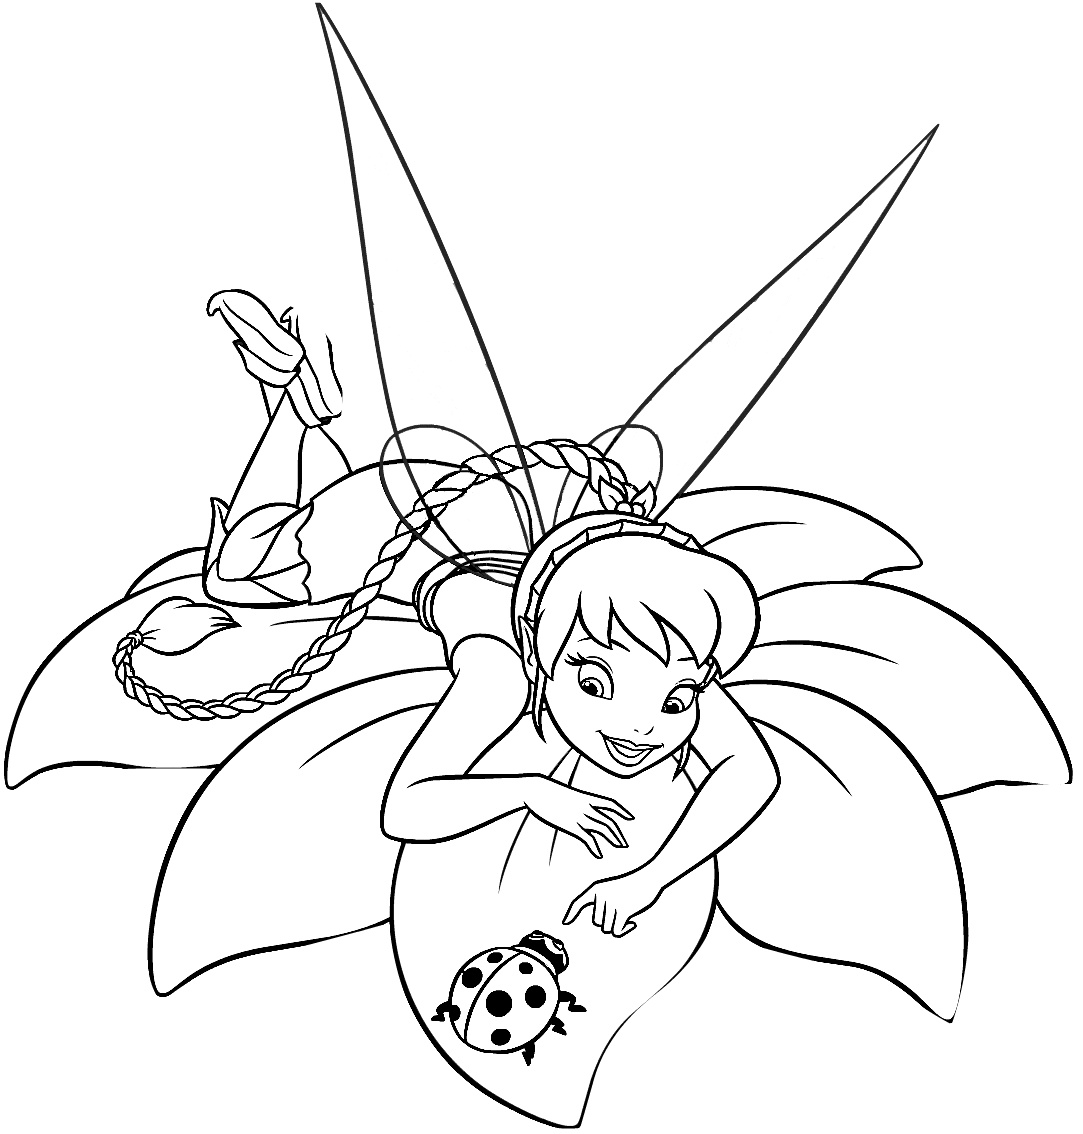 tinkerbell for coloring tinkerbell and friends coloring pages team colors tinkerbell for coloring